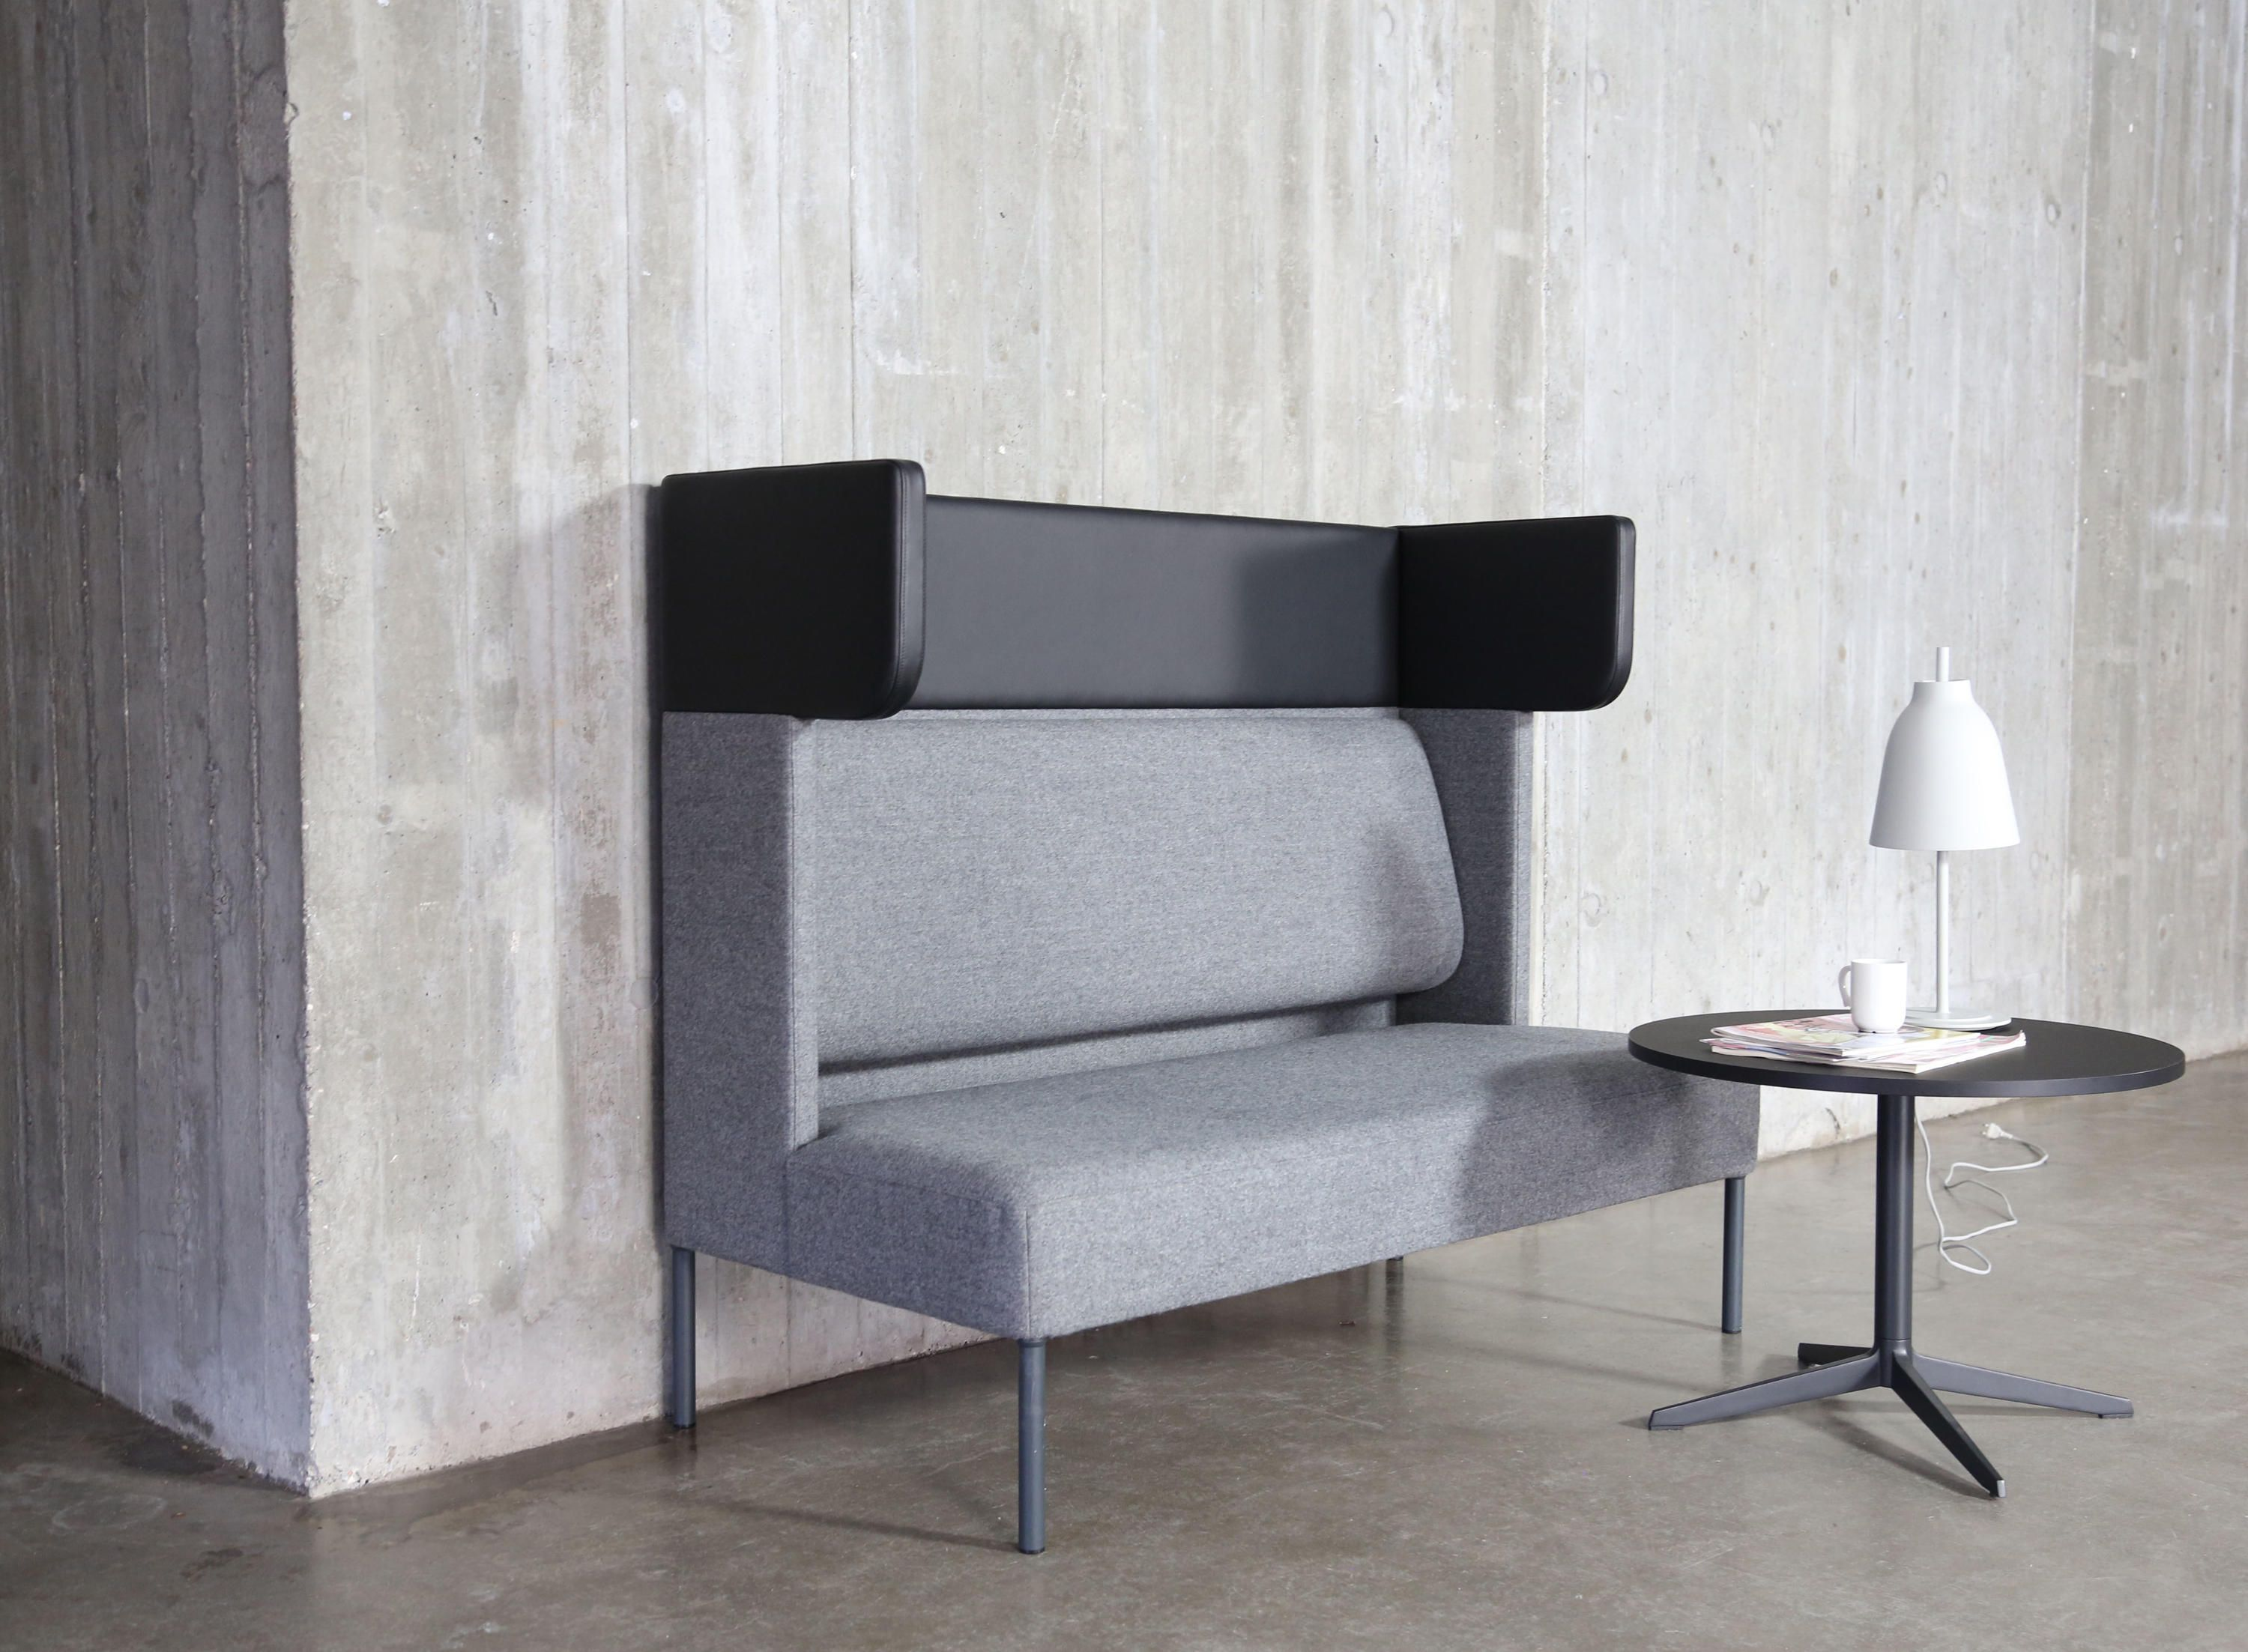 Four®us is everything from a classic sofa to an innovative modular